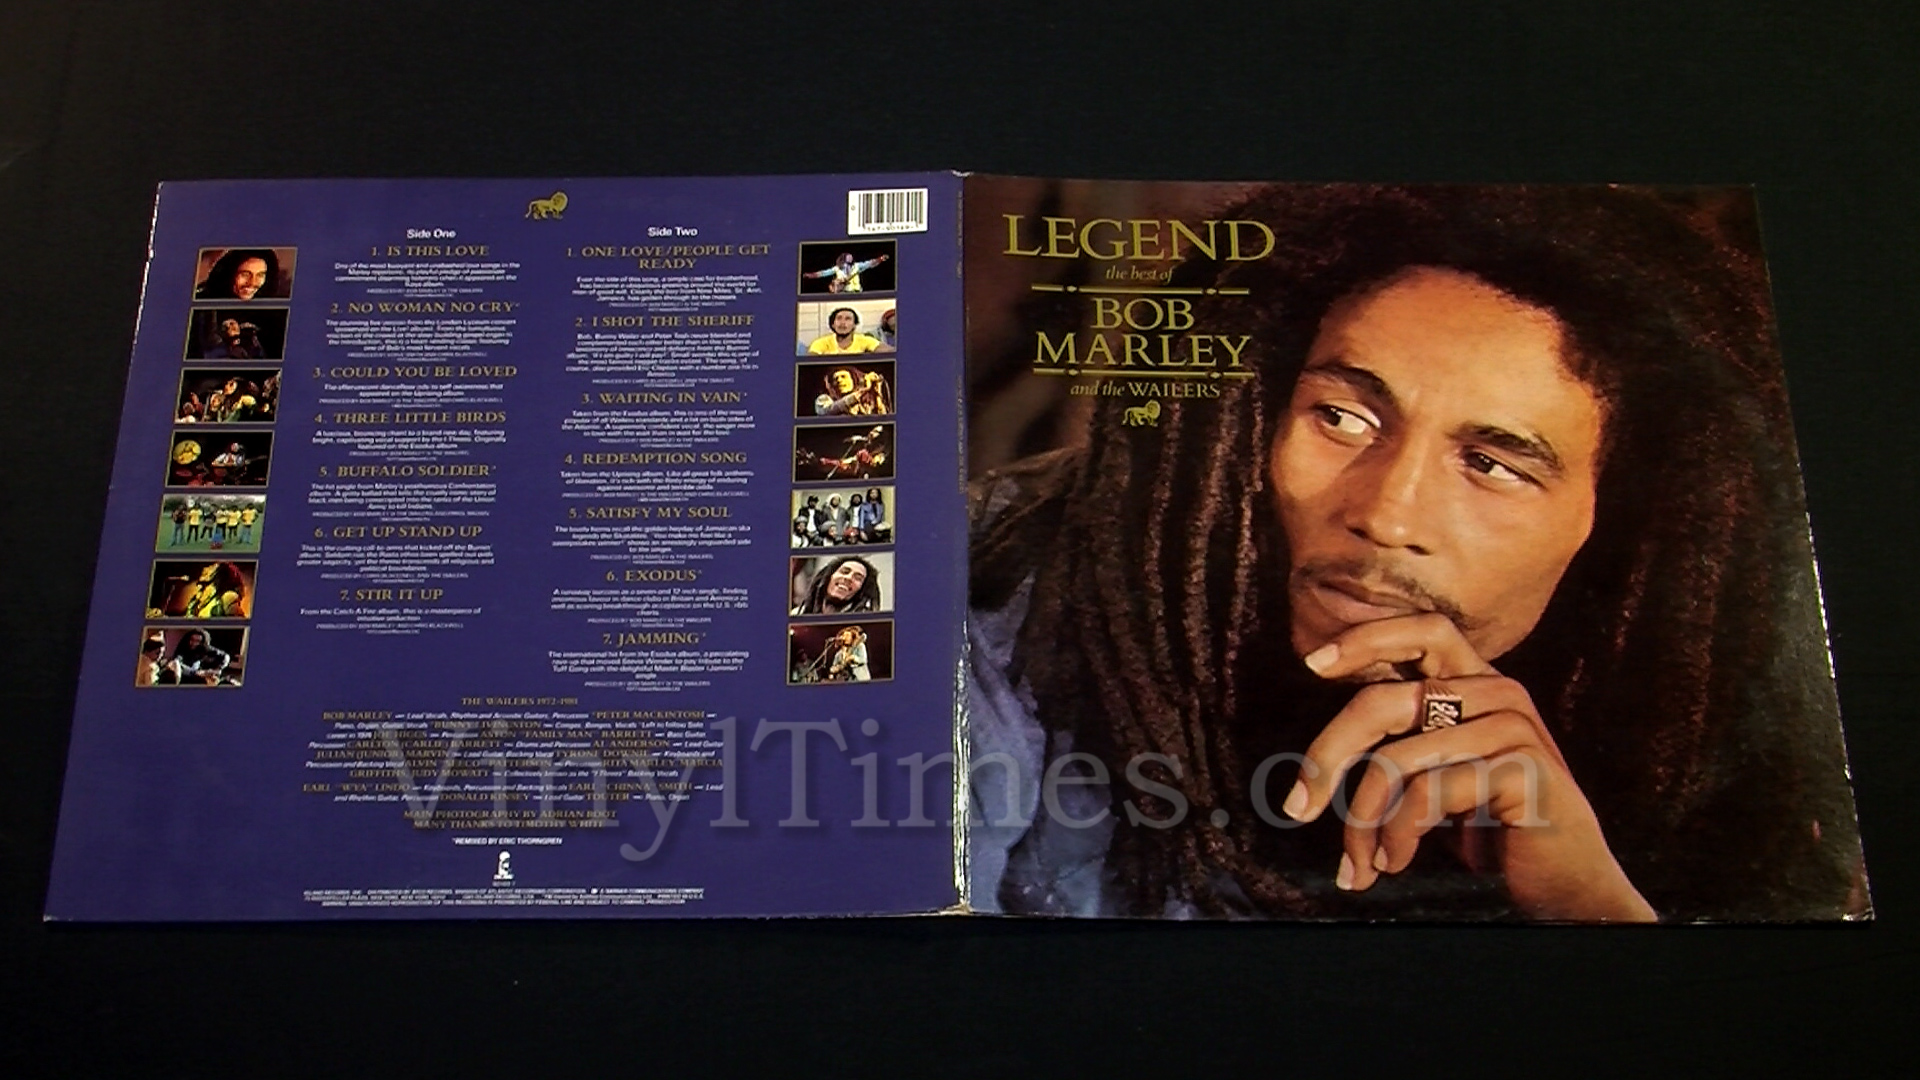 Bob marley legend the best of vinyl lp vinyltimesvinyltimes bob marley the best of bob marley vinyl lp record album gatefold cover thecheapjerseys Gallery